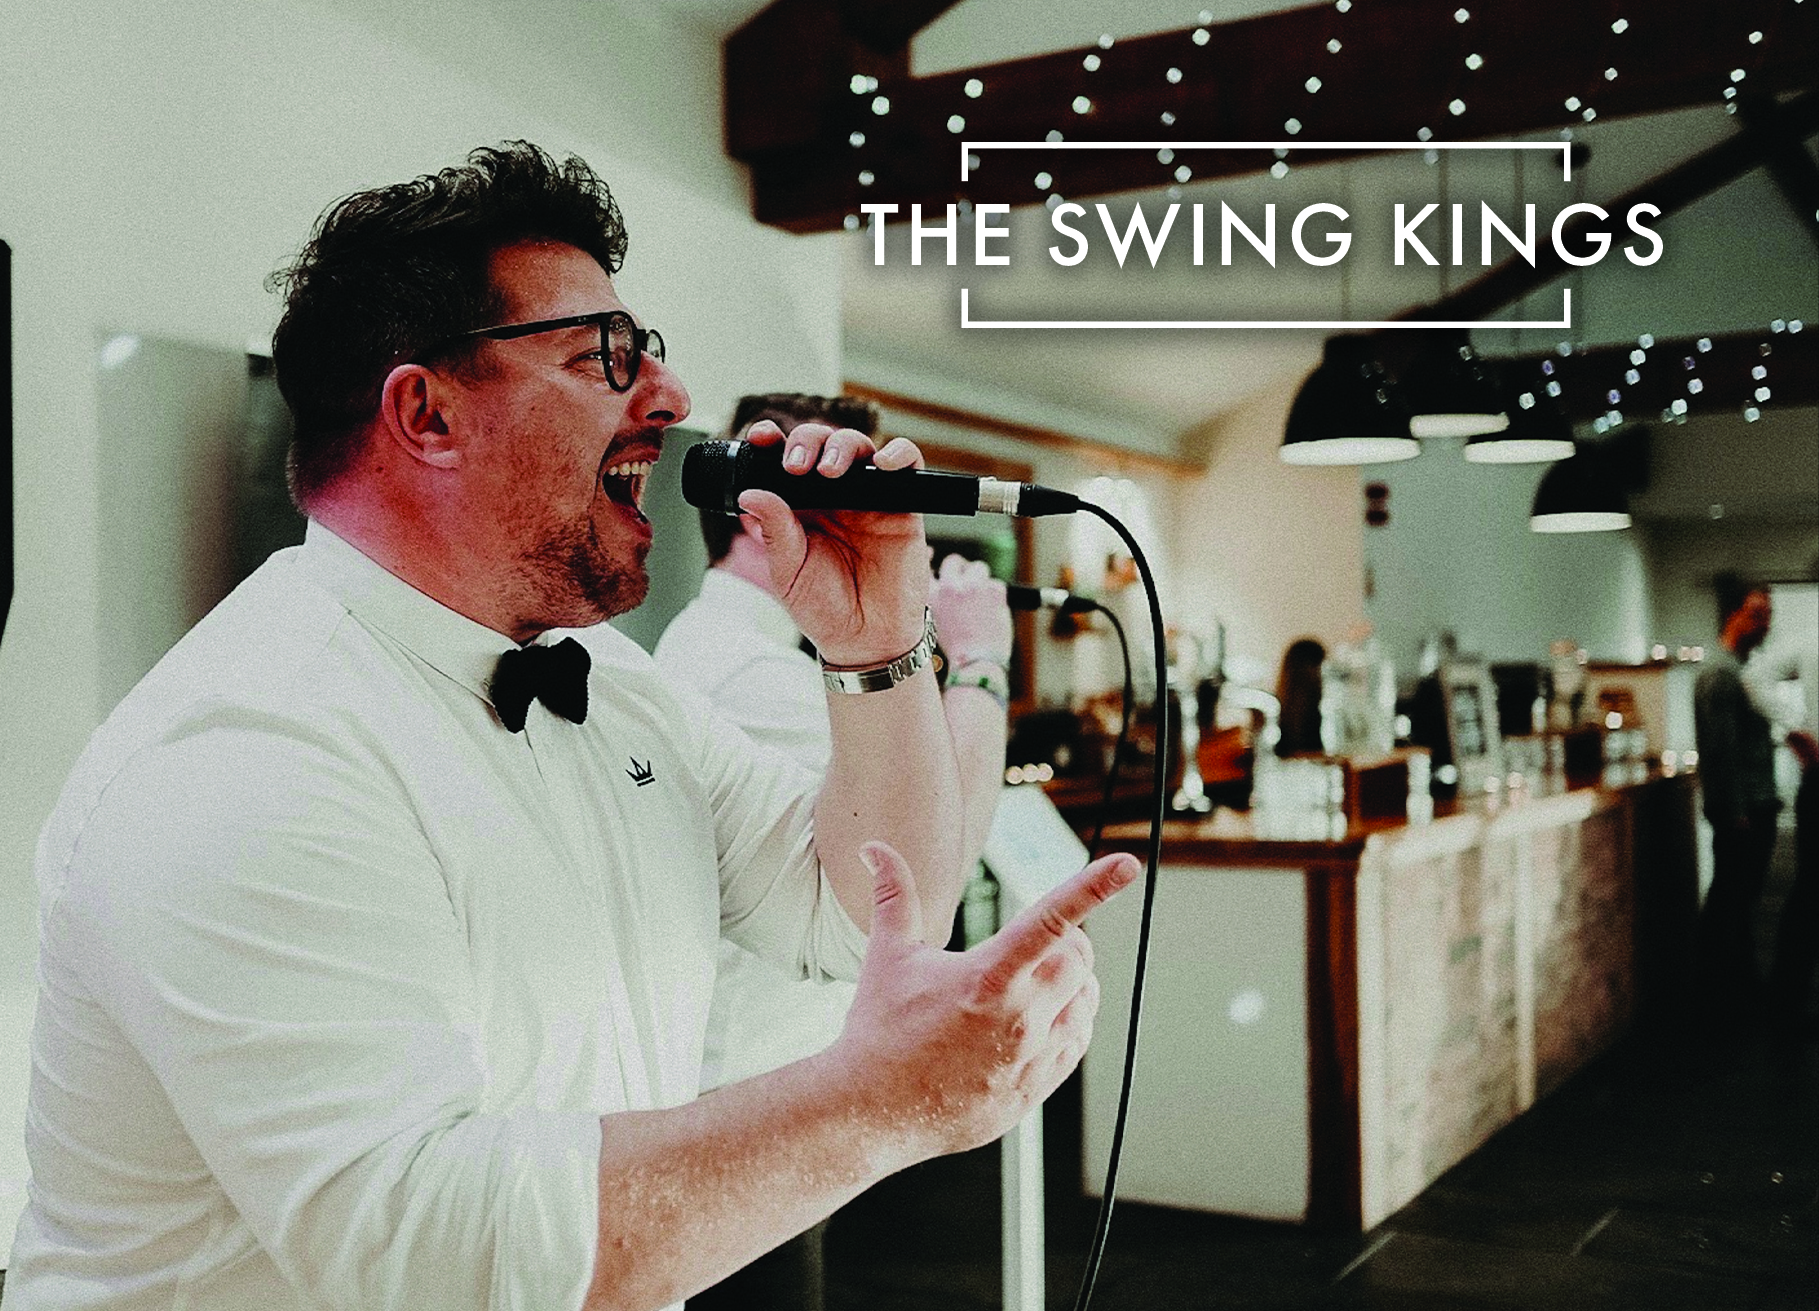 swing kings flyer.jpg